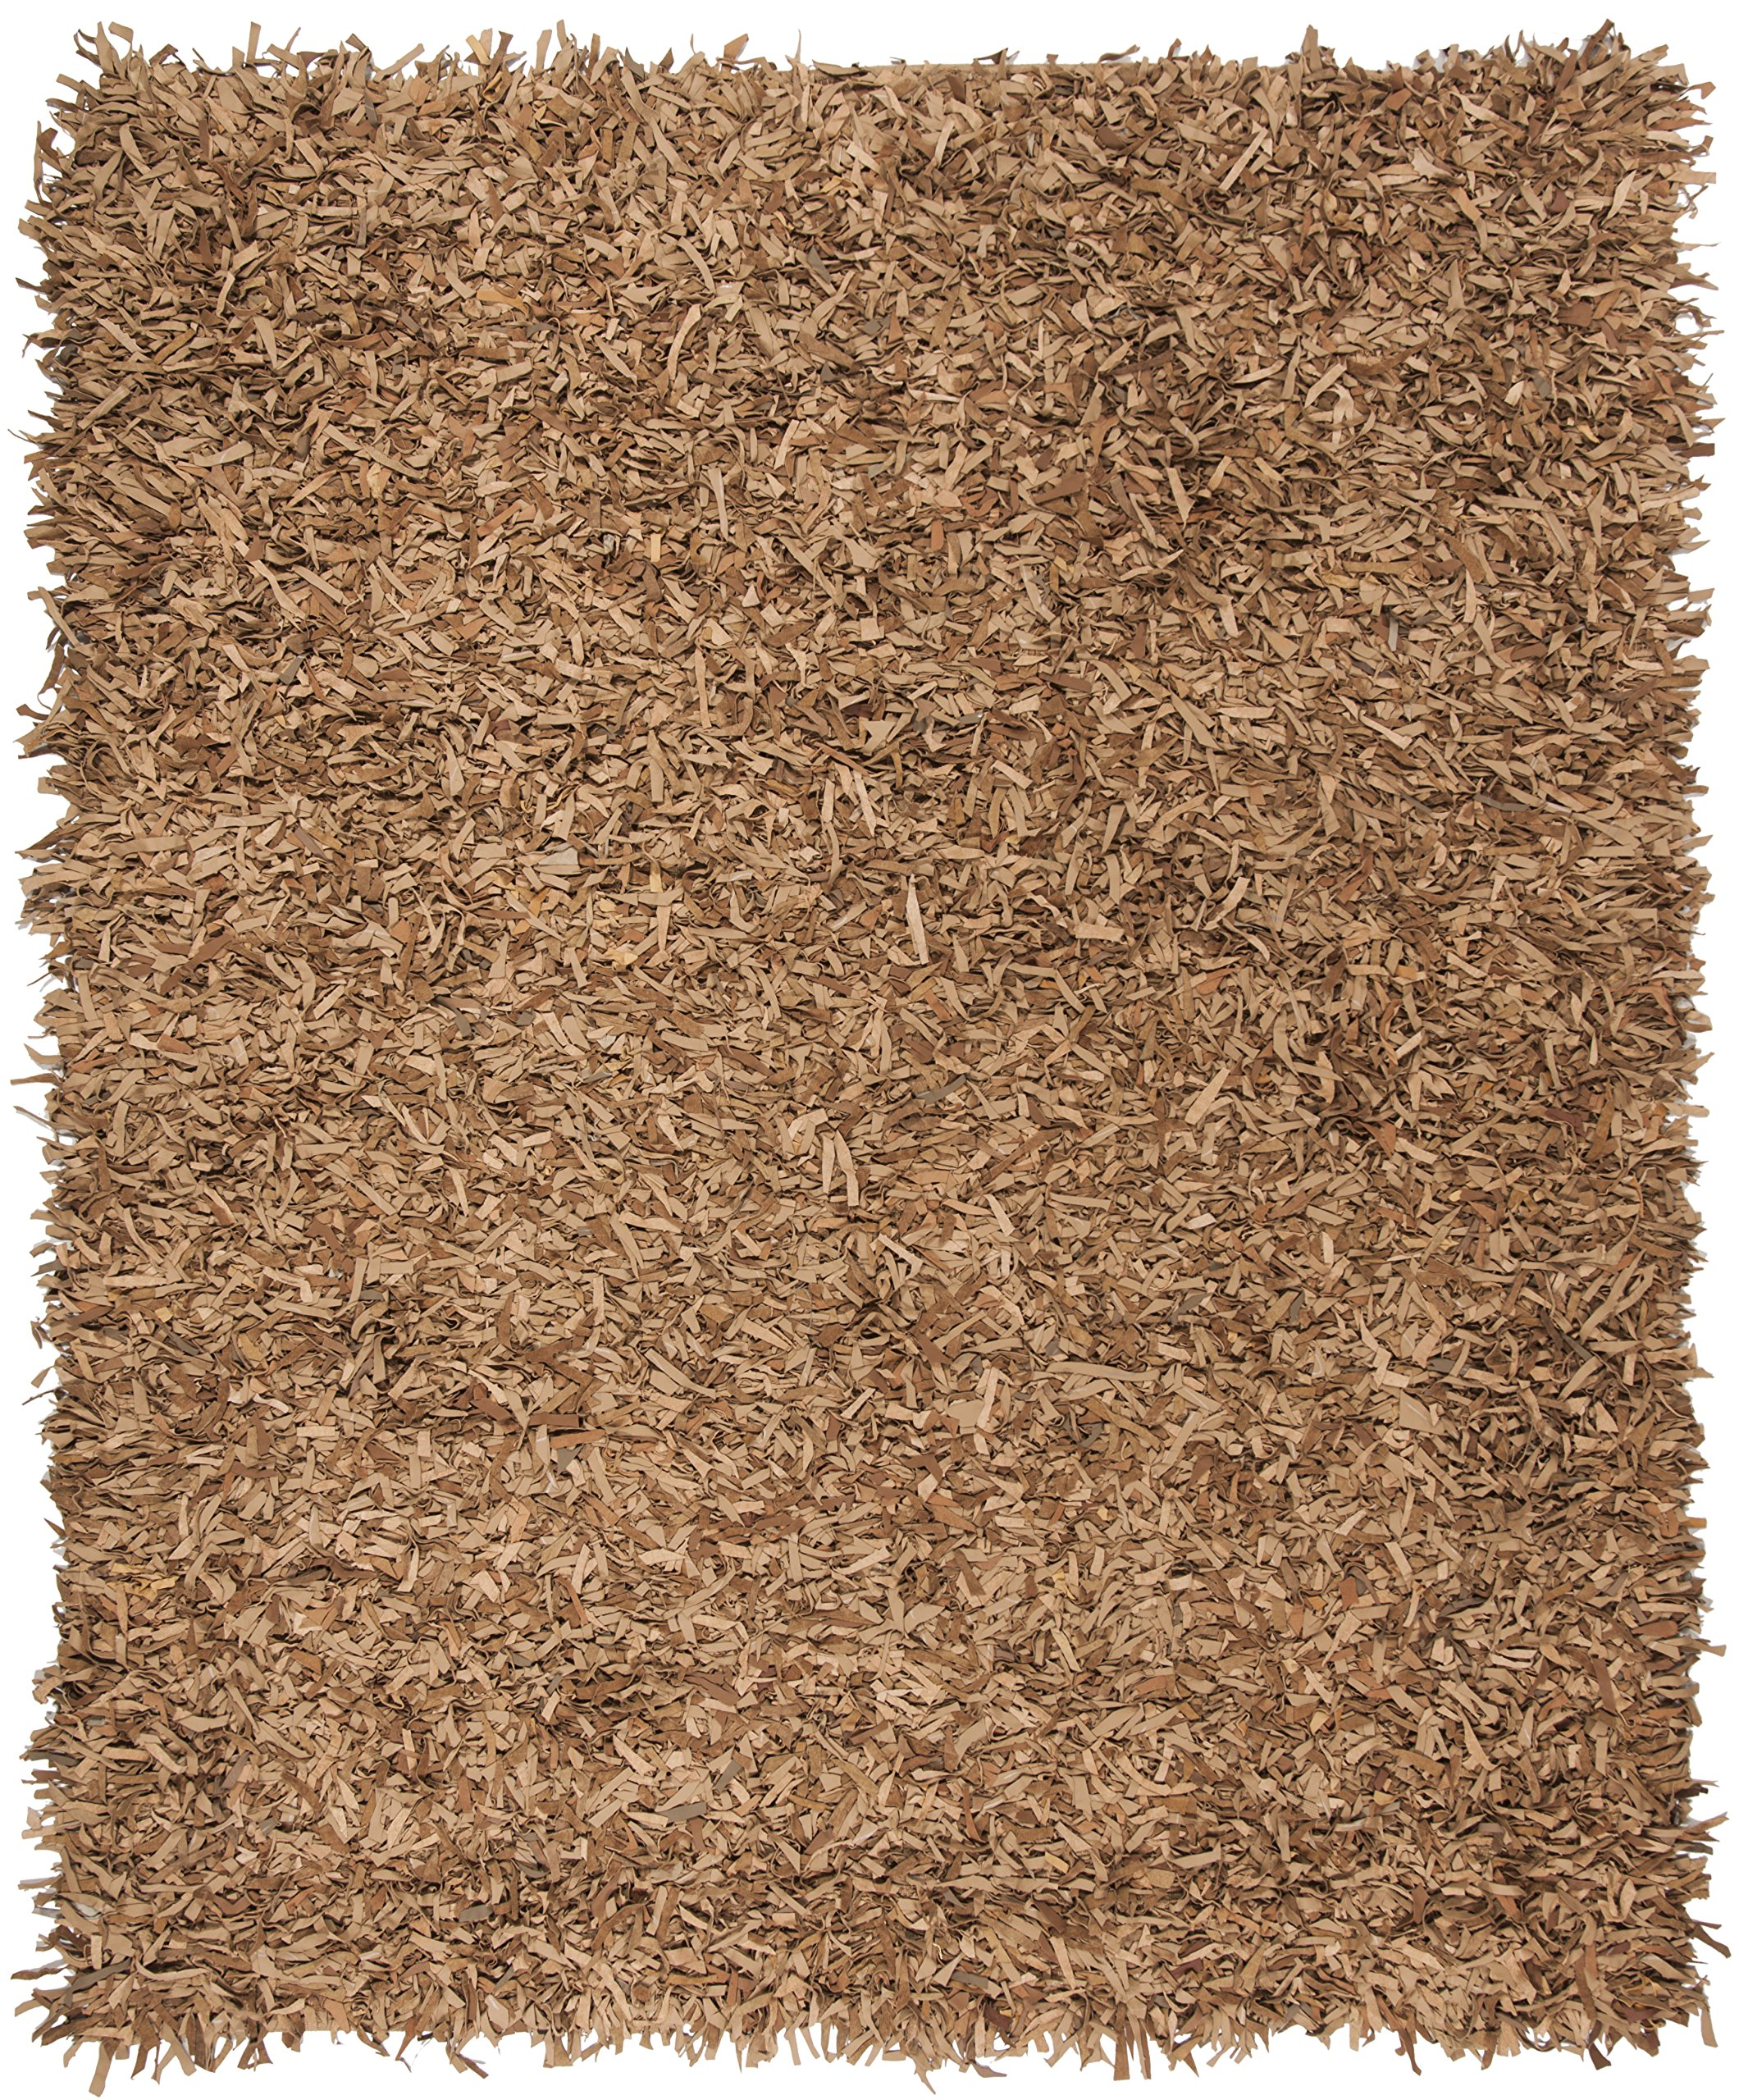 Safavieh Leather Shag Collection LSG601E Hand-Knotted Light Gold Decorative Area Rug (6' x 9') by Safavieh